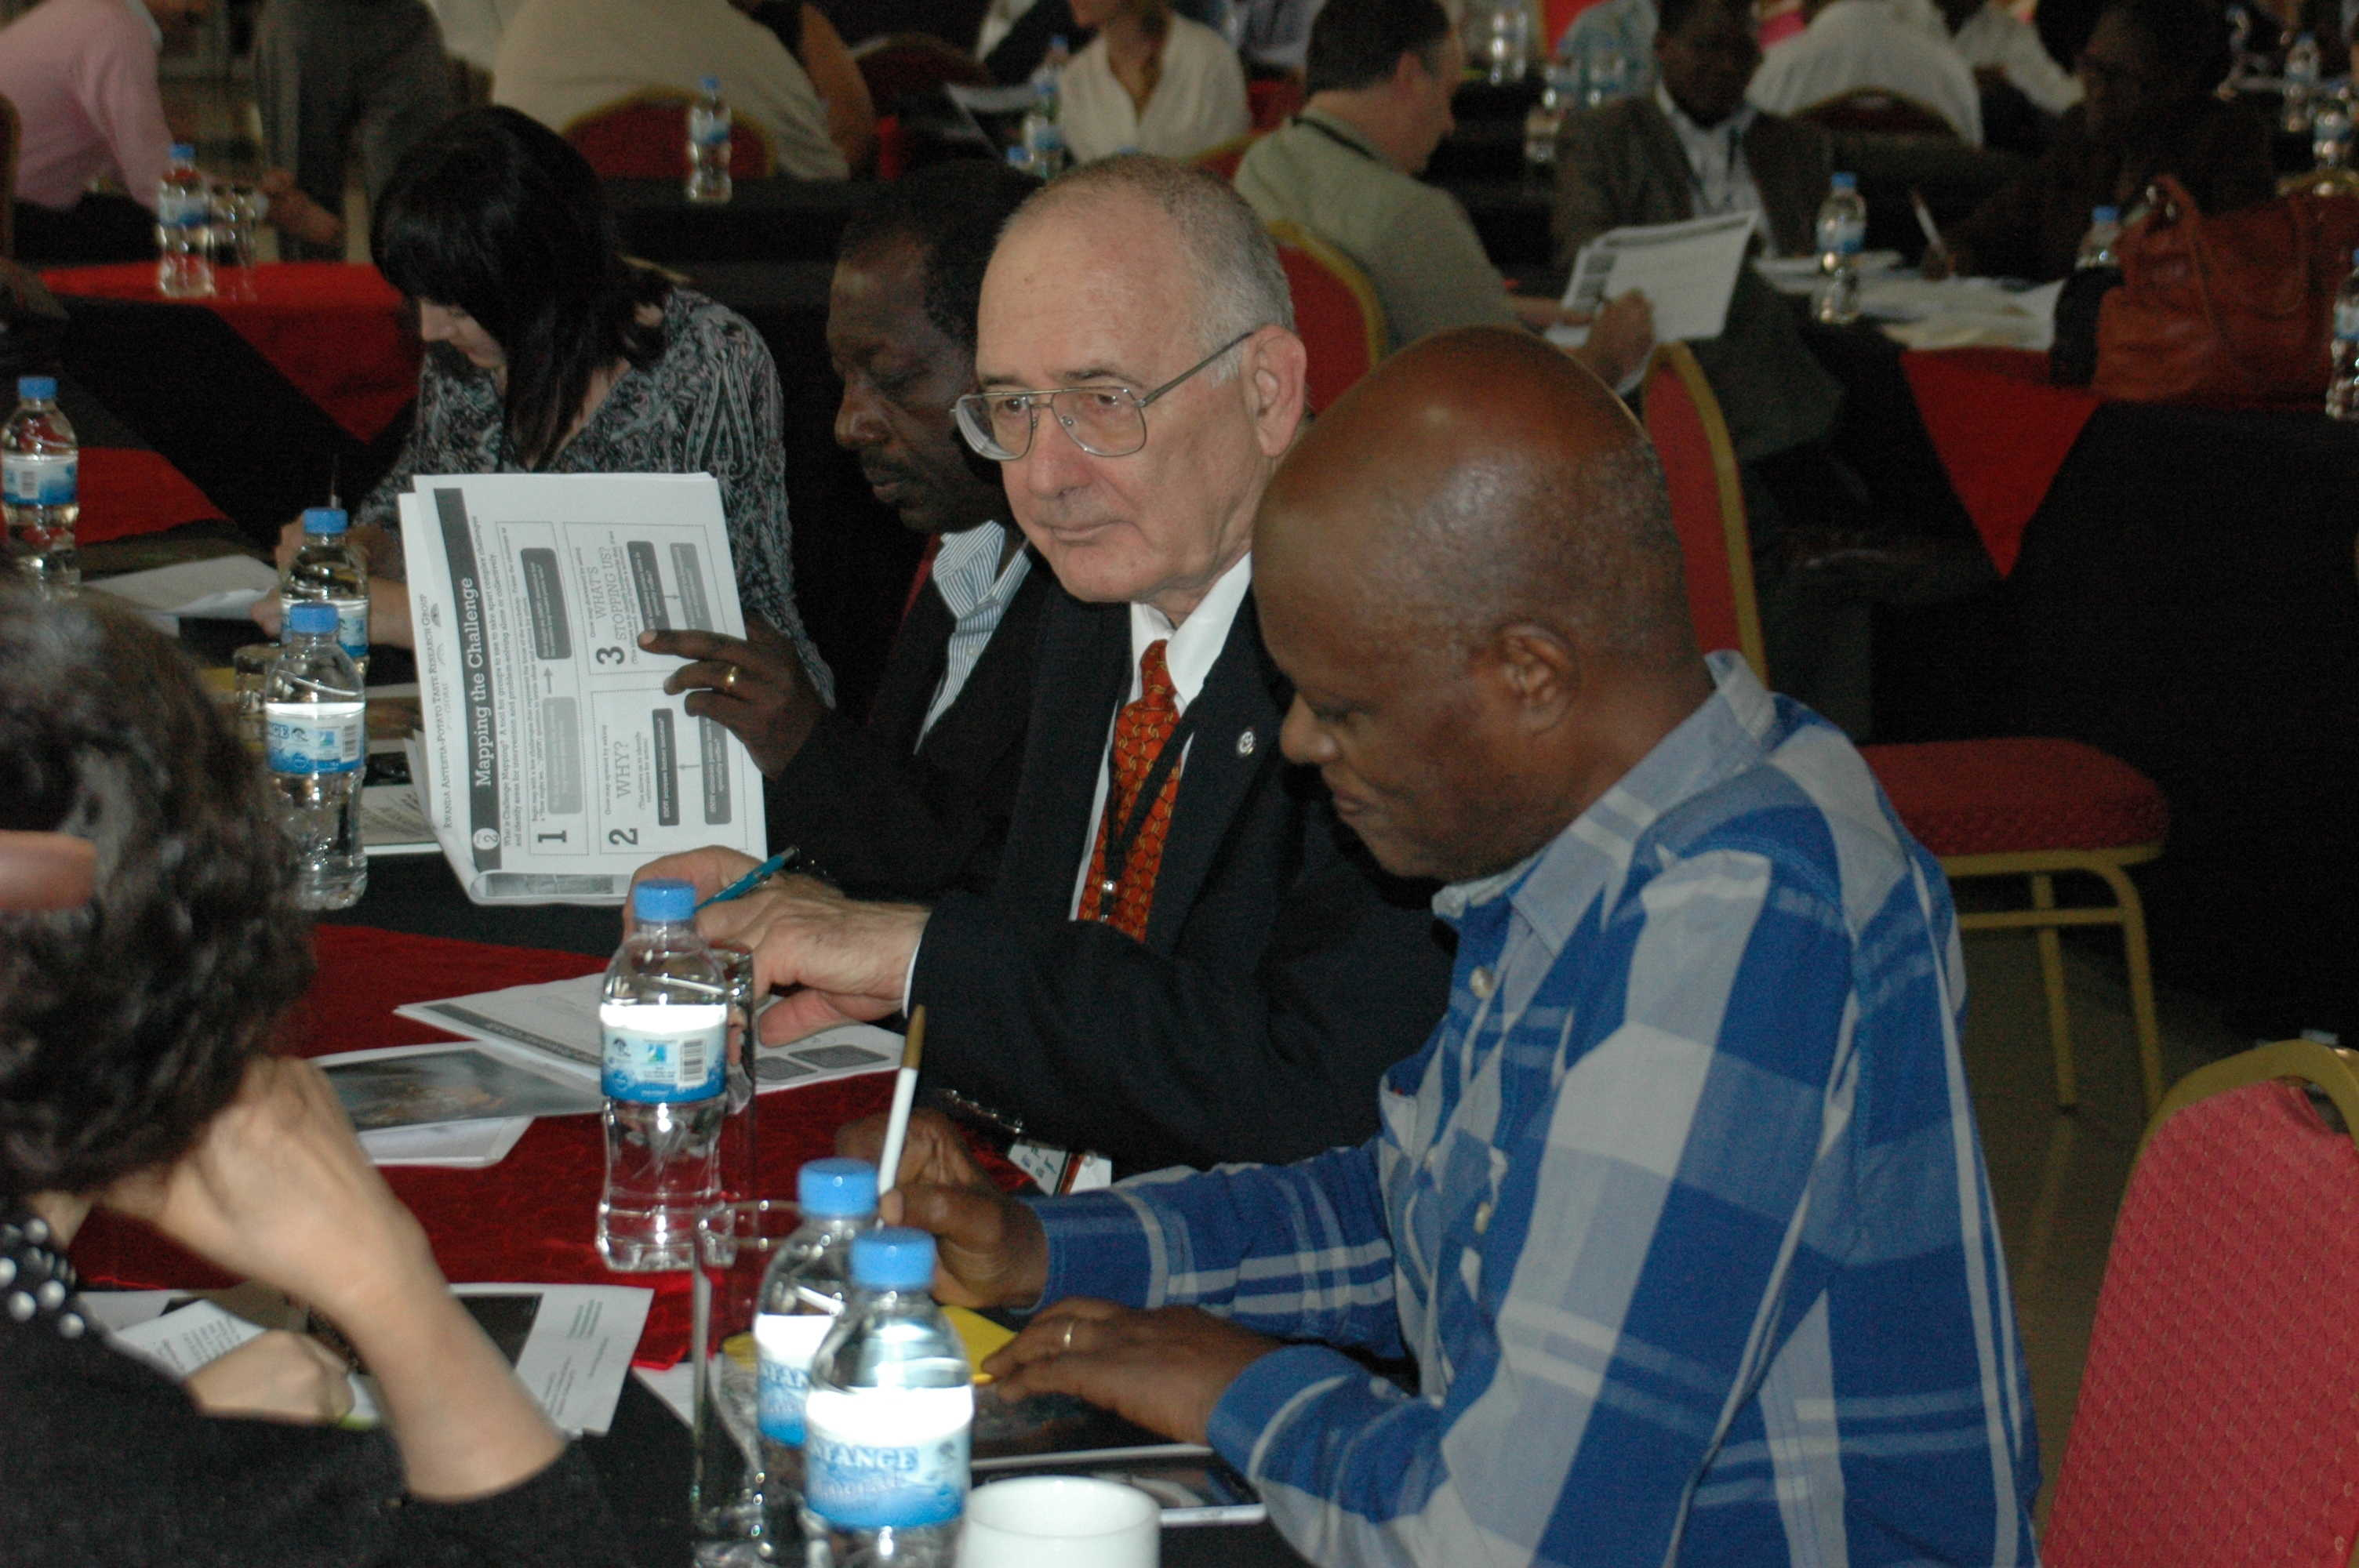 Participants identify priority challenges for action. Photo Credit: GKI